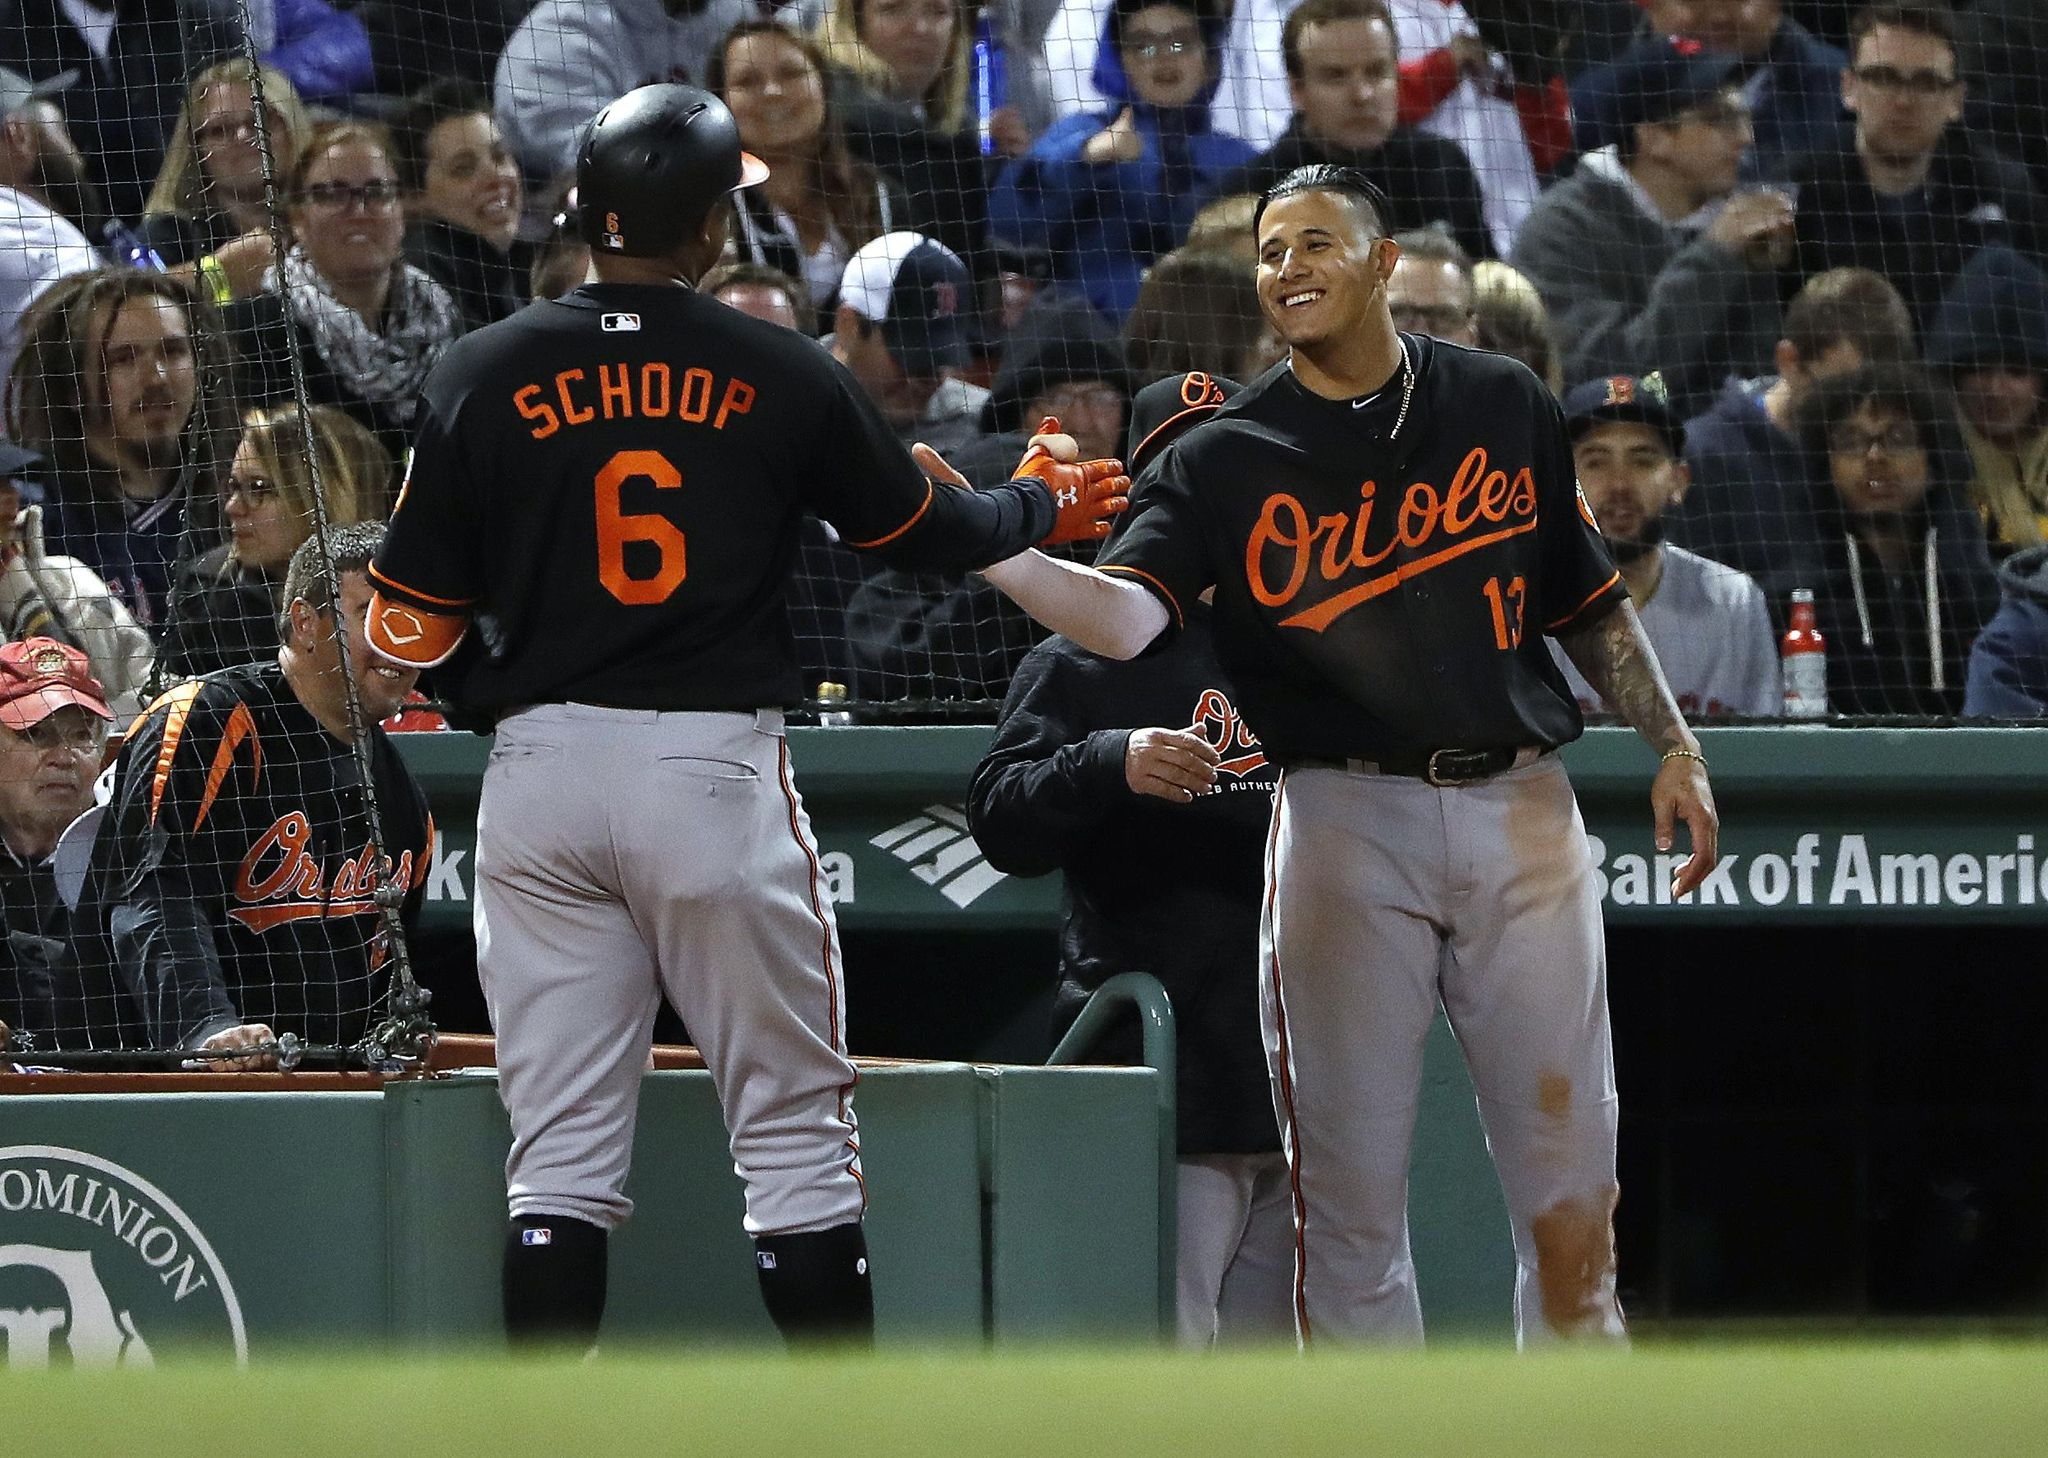 Orioles_red_sox_baseball_82297_s2048x1458